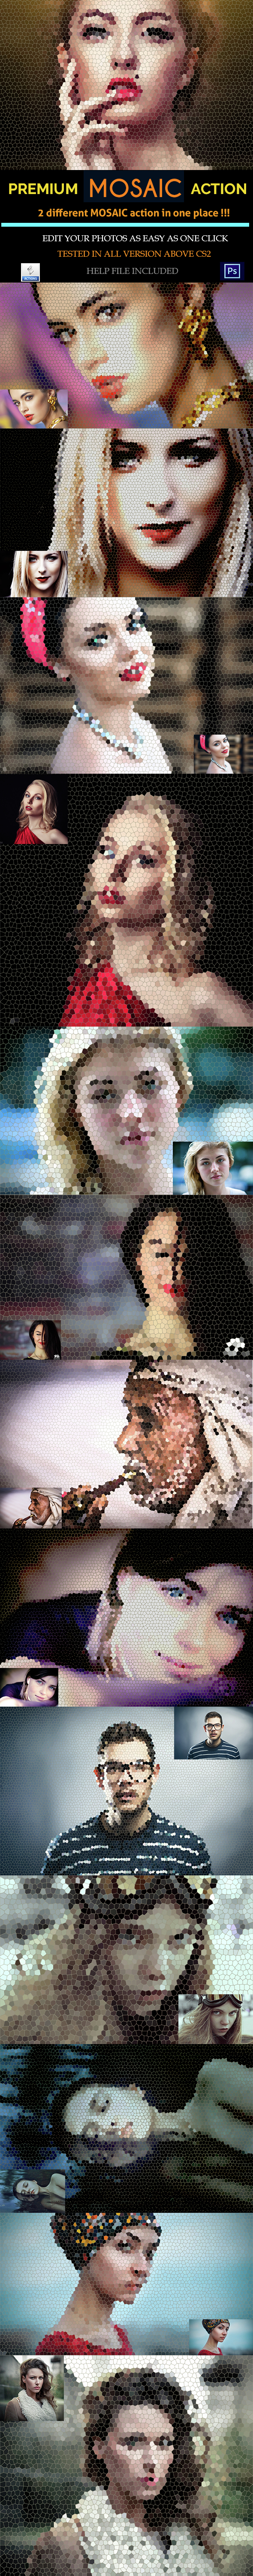 Realistic Mosaic Action Pack - Photo Effects Actions